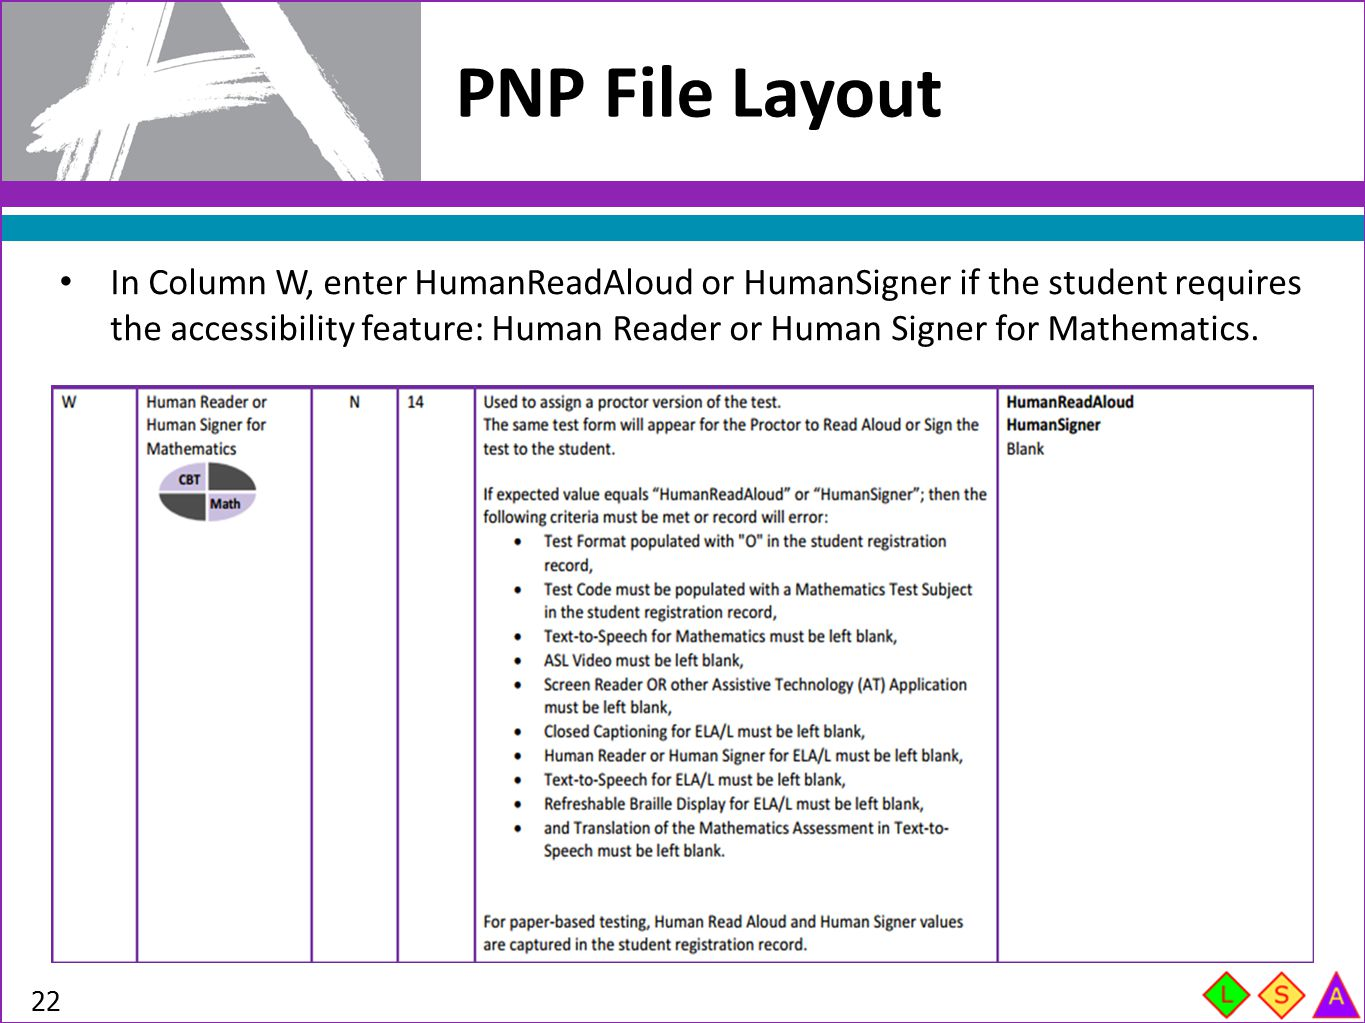 PNP File Layout